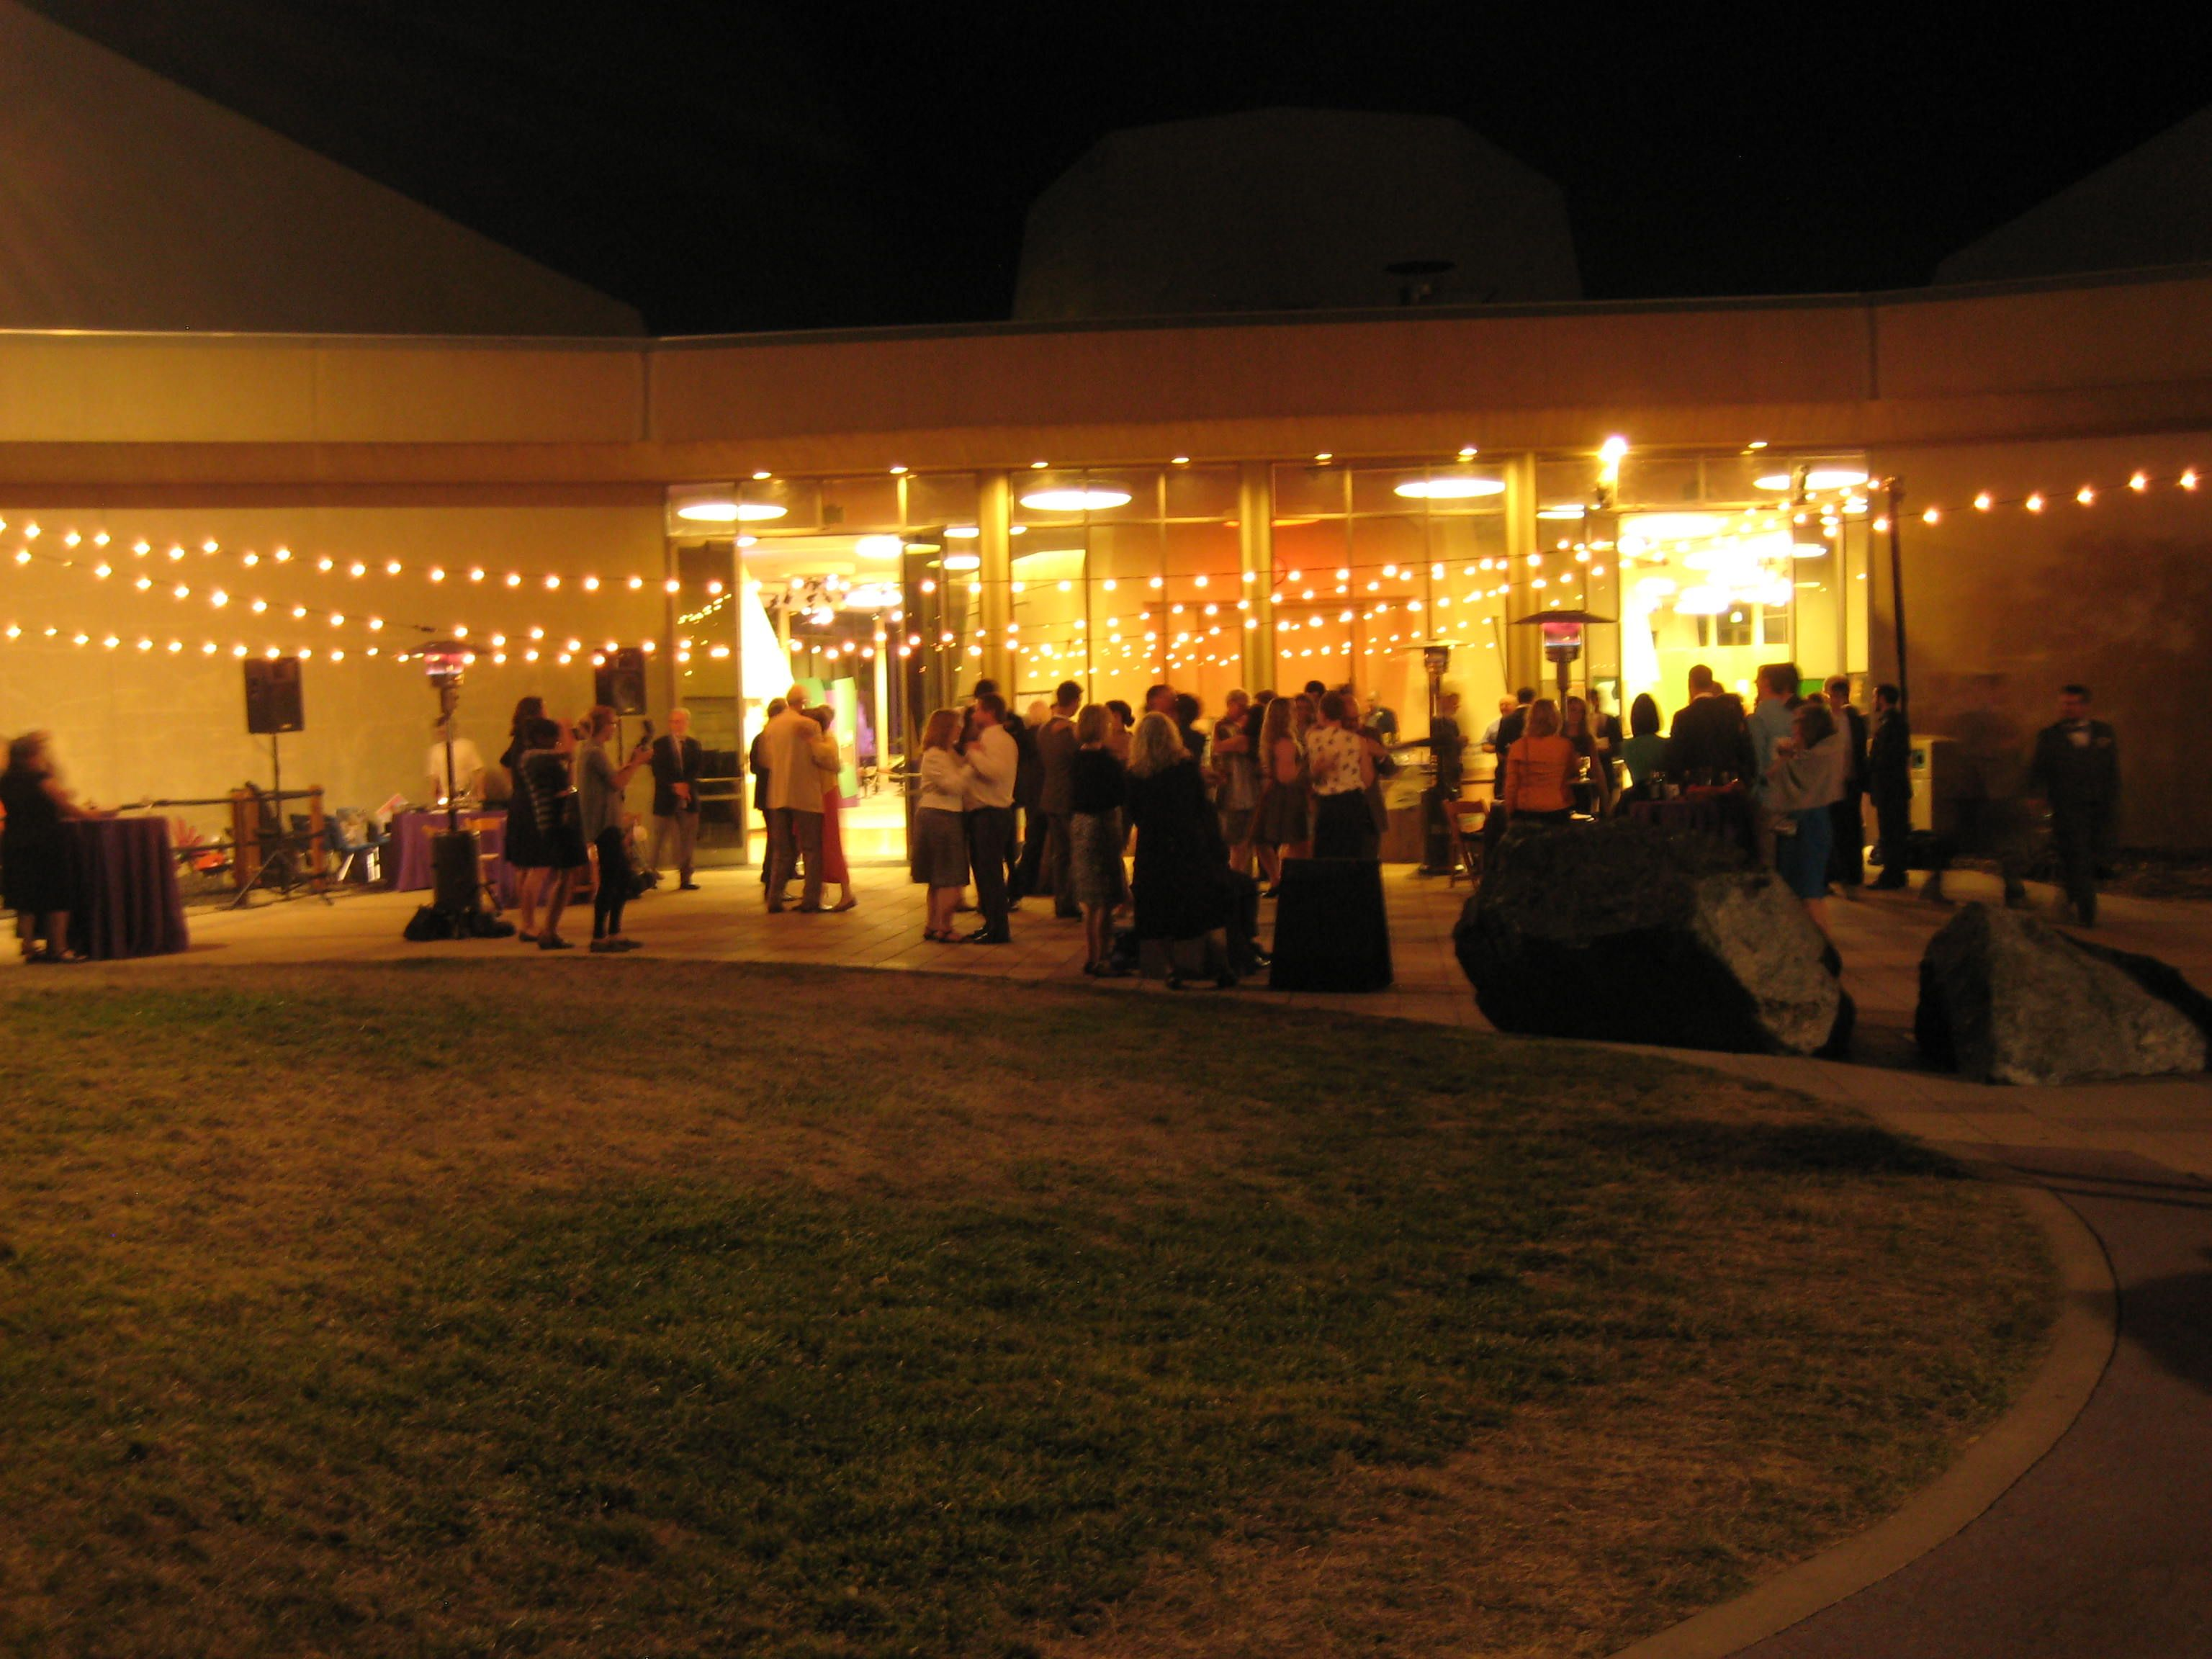 We Rented String Lights For Over The Dancing Area On The Patio In The  Science Park